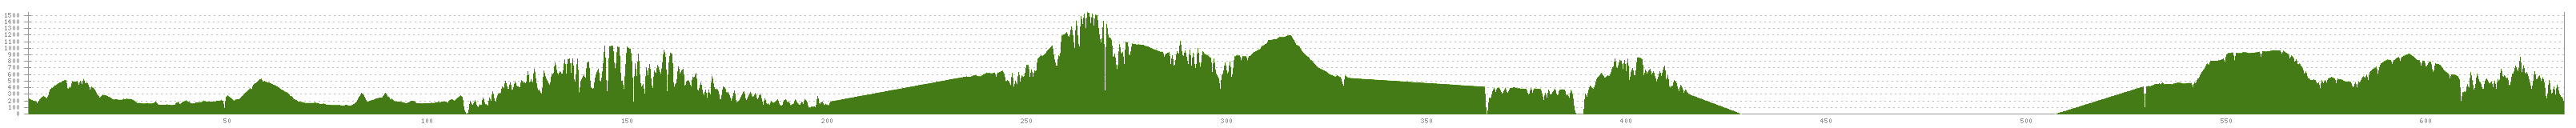 Elevation profile Cycle Tour Radwandern in den Cevennen 2018